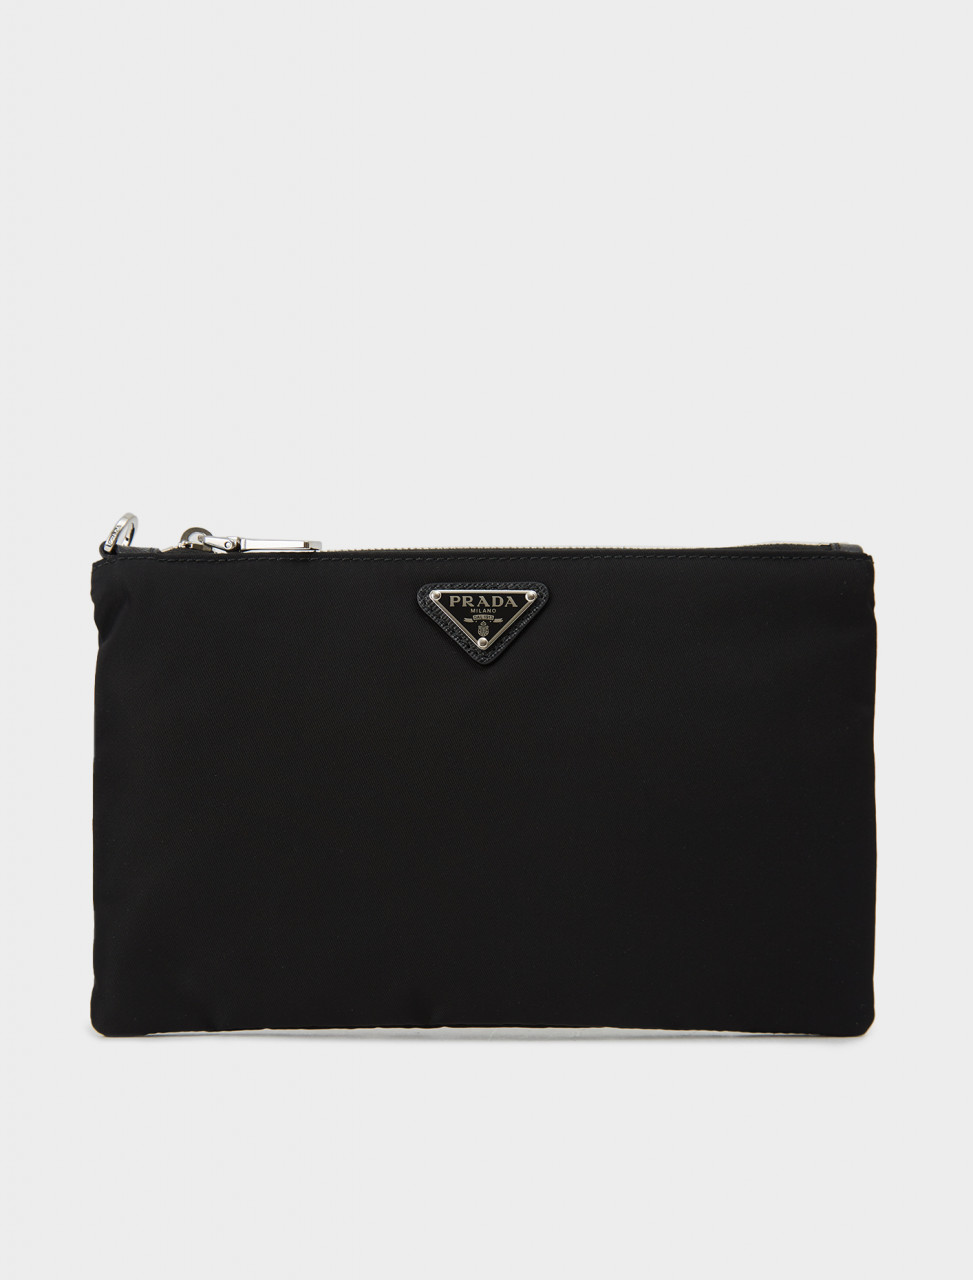 242-2NH004-064-F0002 PRADA NYLON COSMETICS CASE